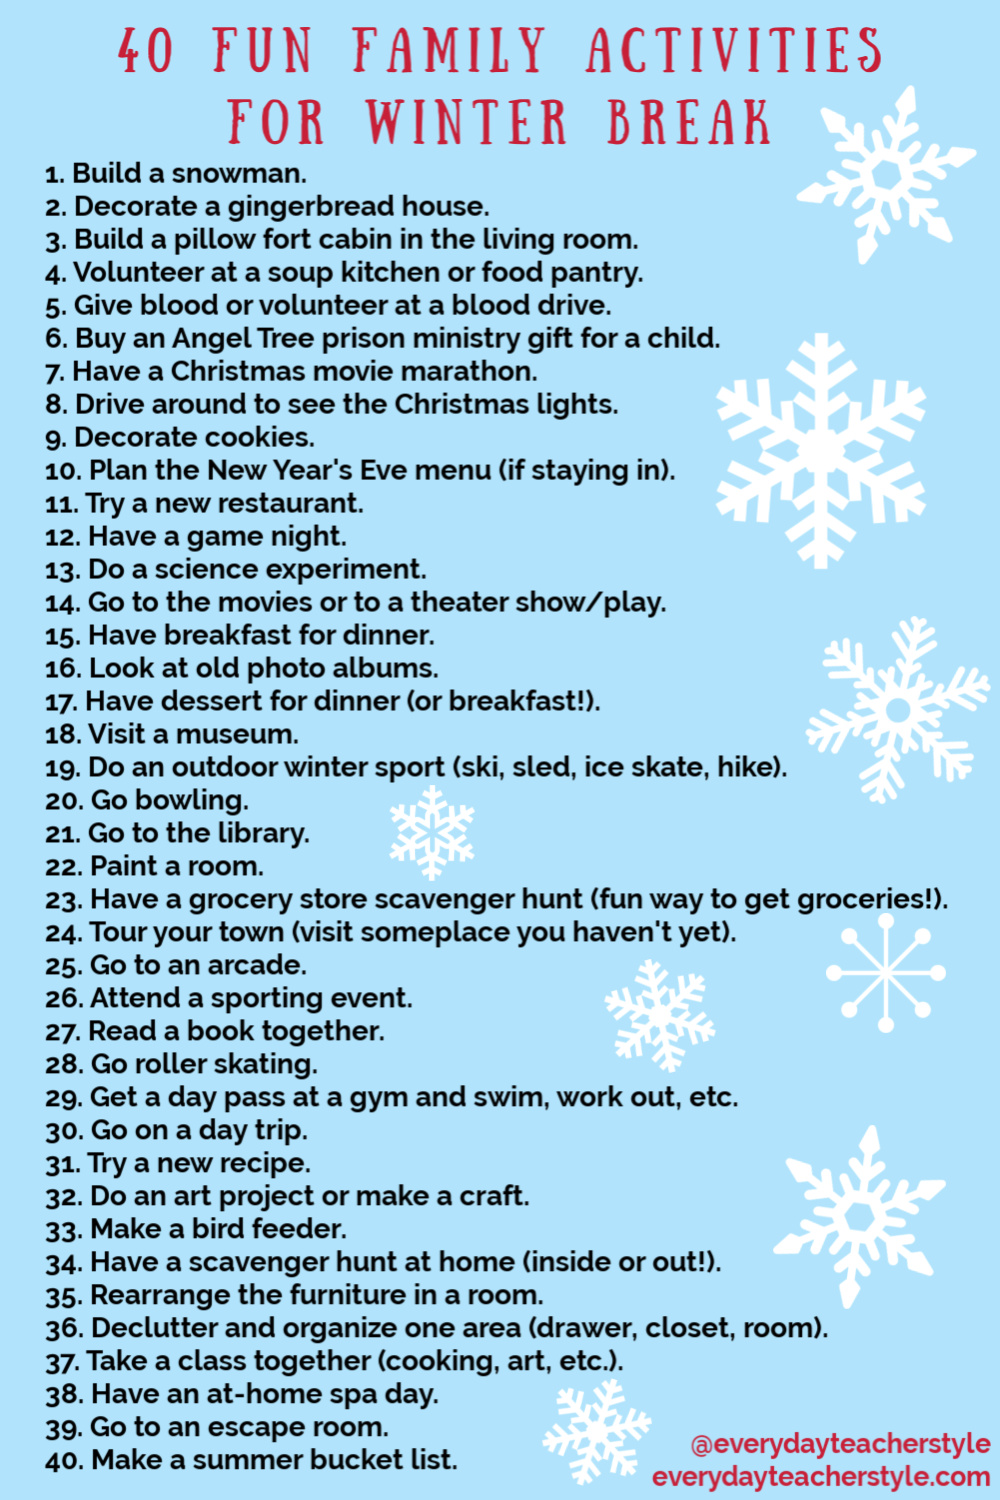 40 things for families to do over Christmas vacation